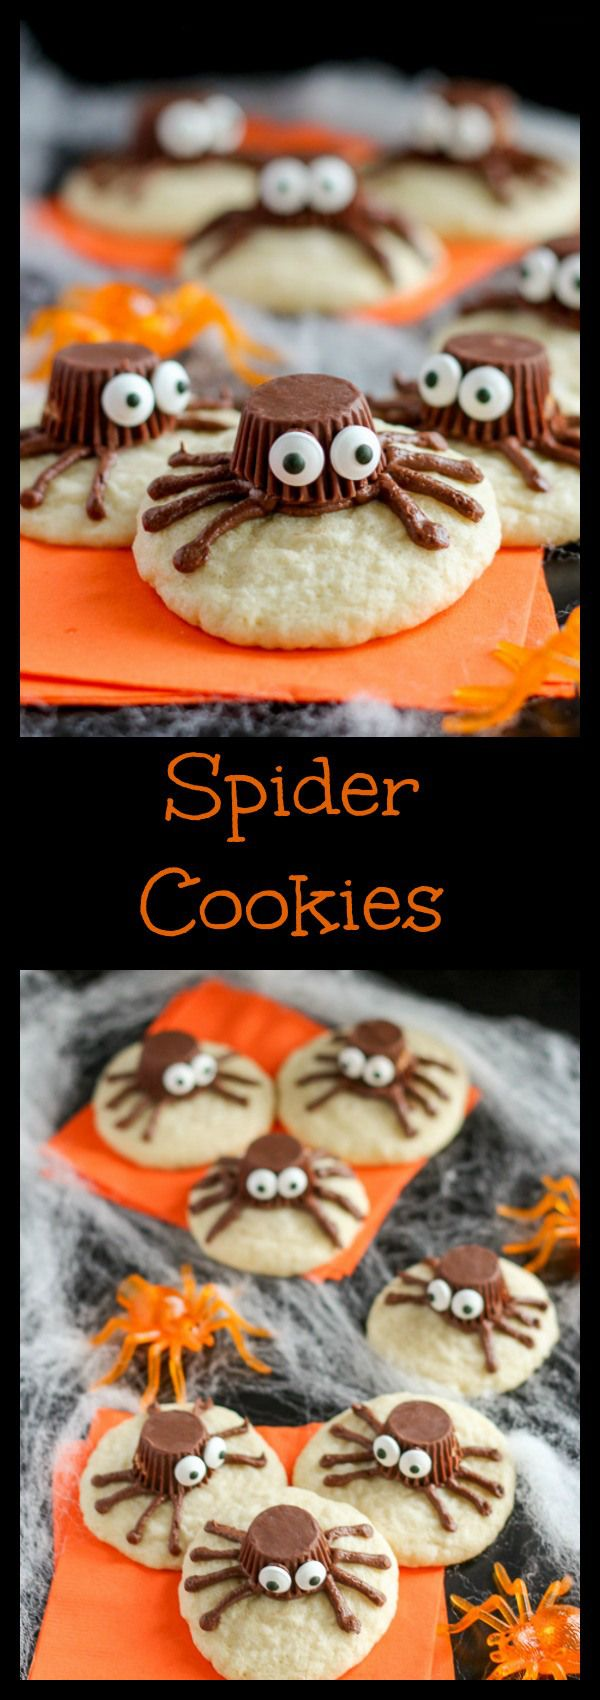 Spider Cookies- Sugar cookies decorated with chocolate frosting and mini peanut butter cups to look like spiders. An easy dessert for Halloween! #halloweencookiesdecorated